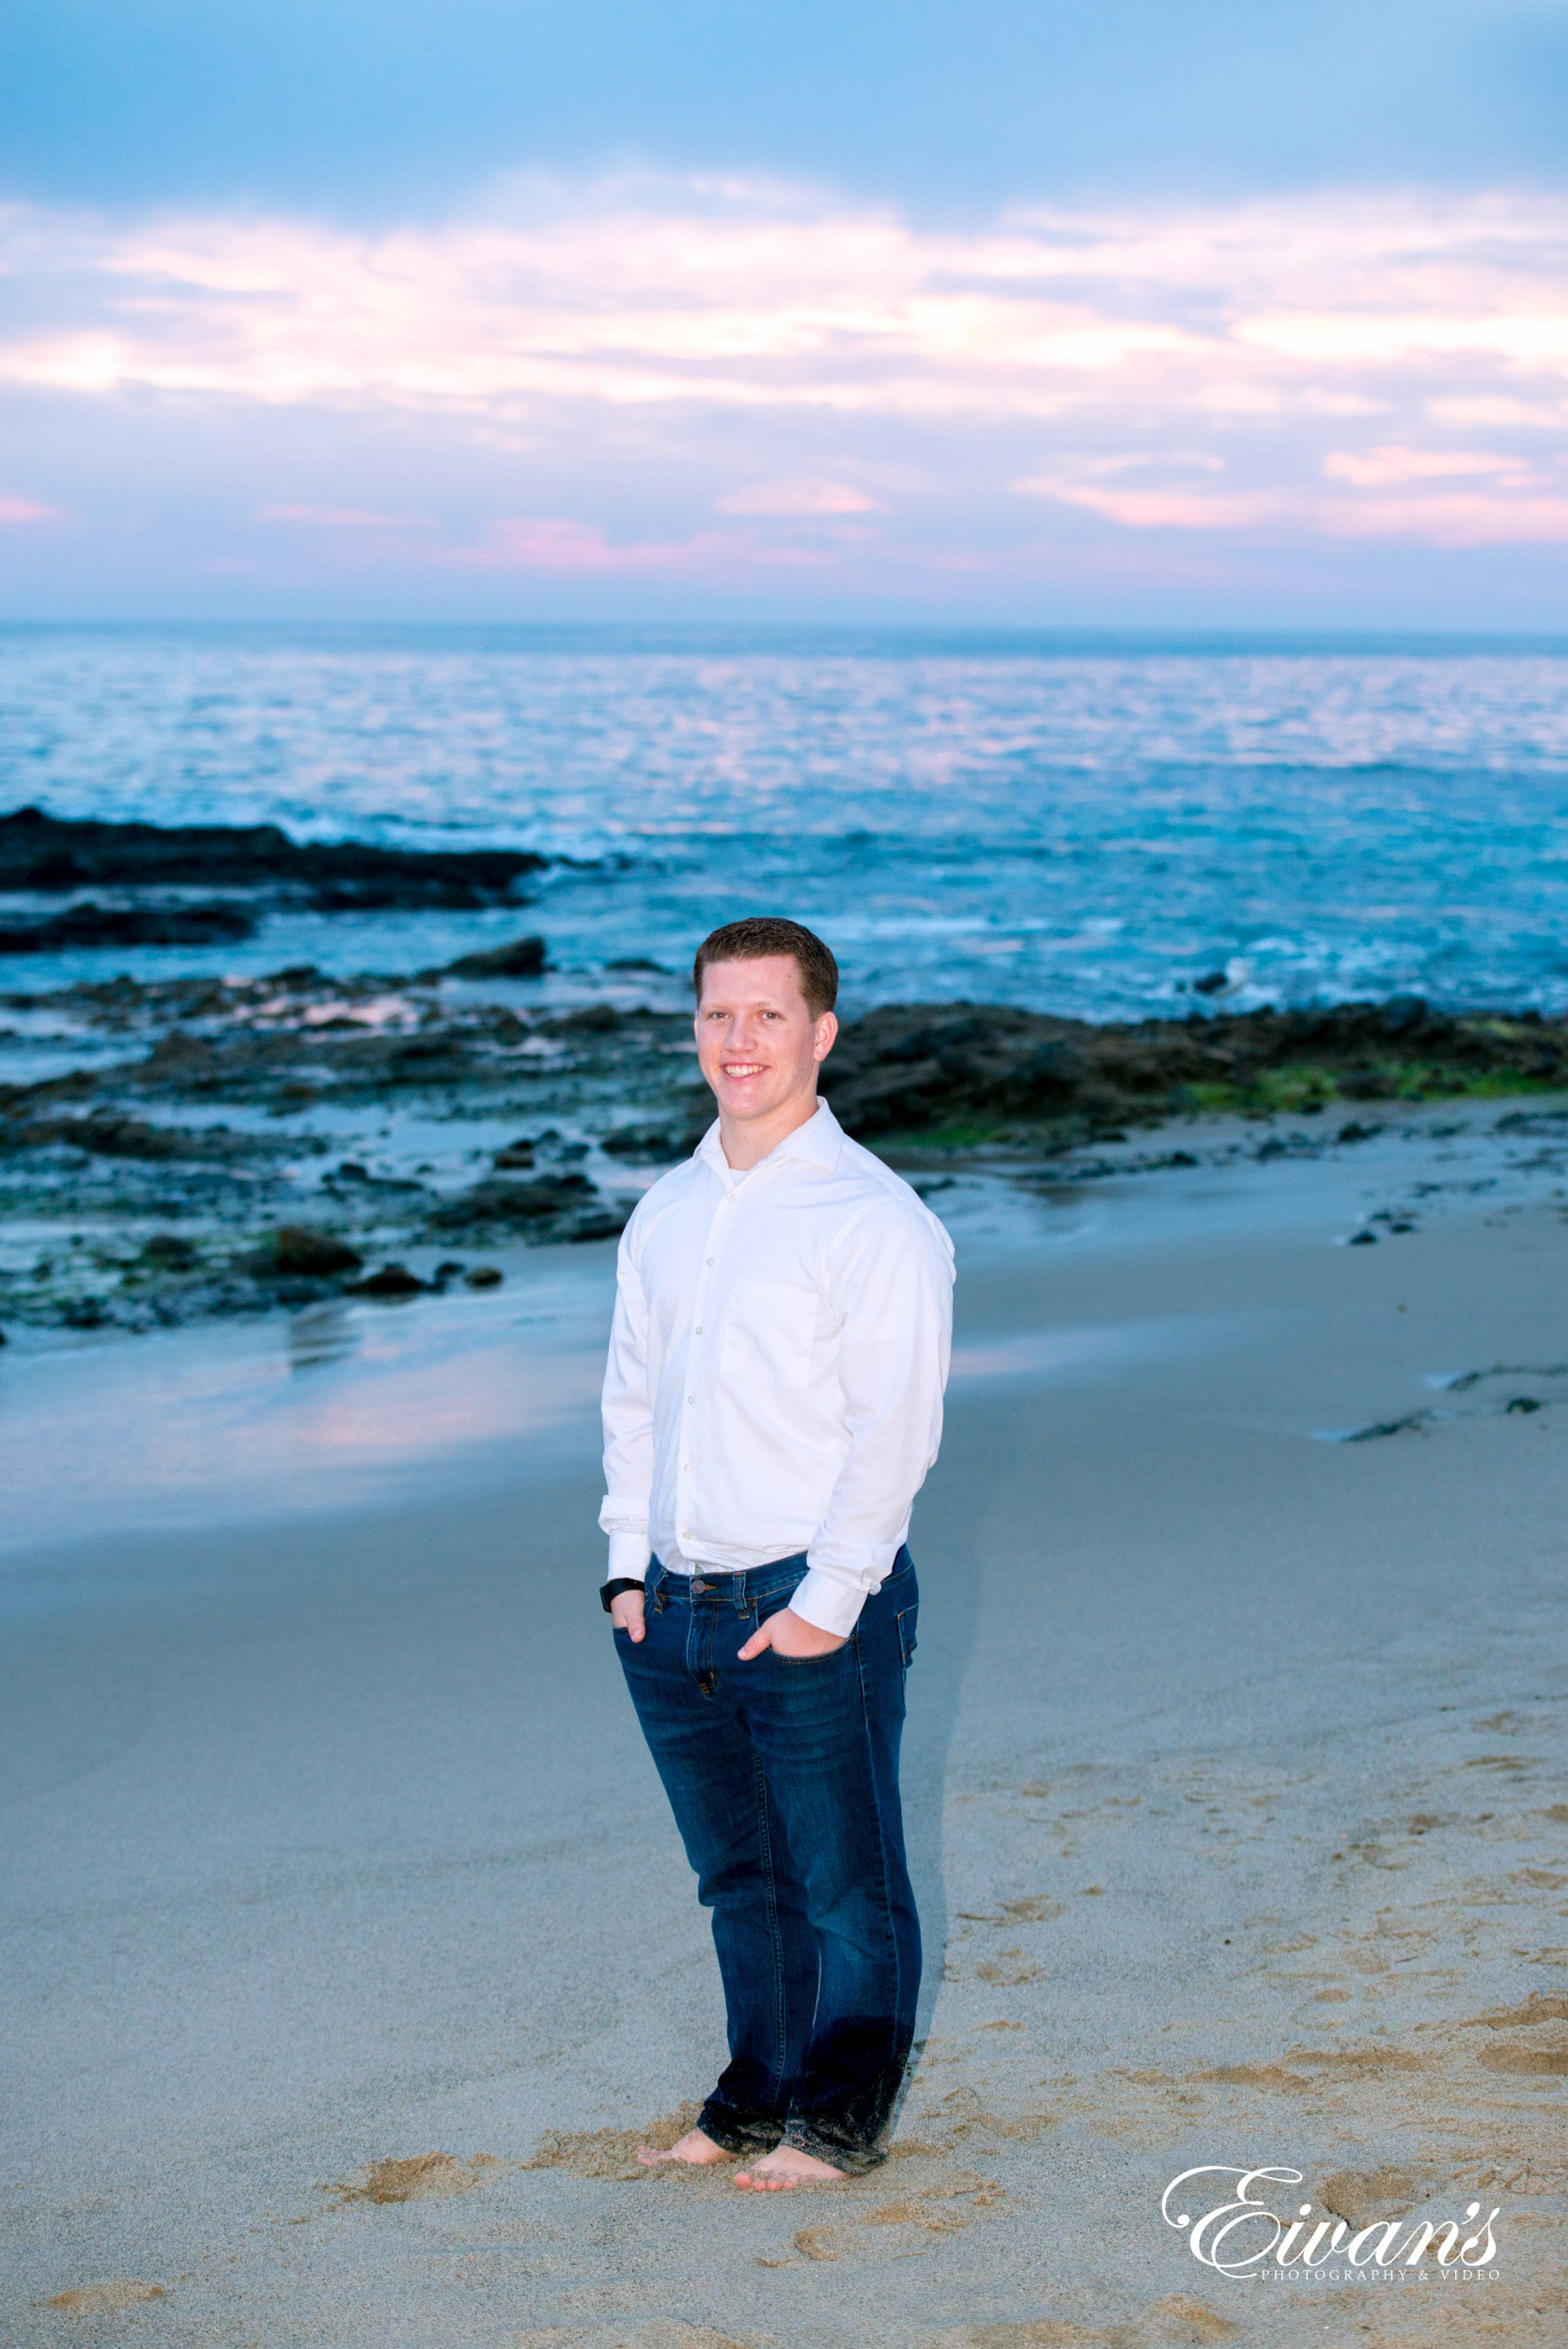 man in white dress shirt and blue denim jeans standing on beach shore during daytime